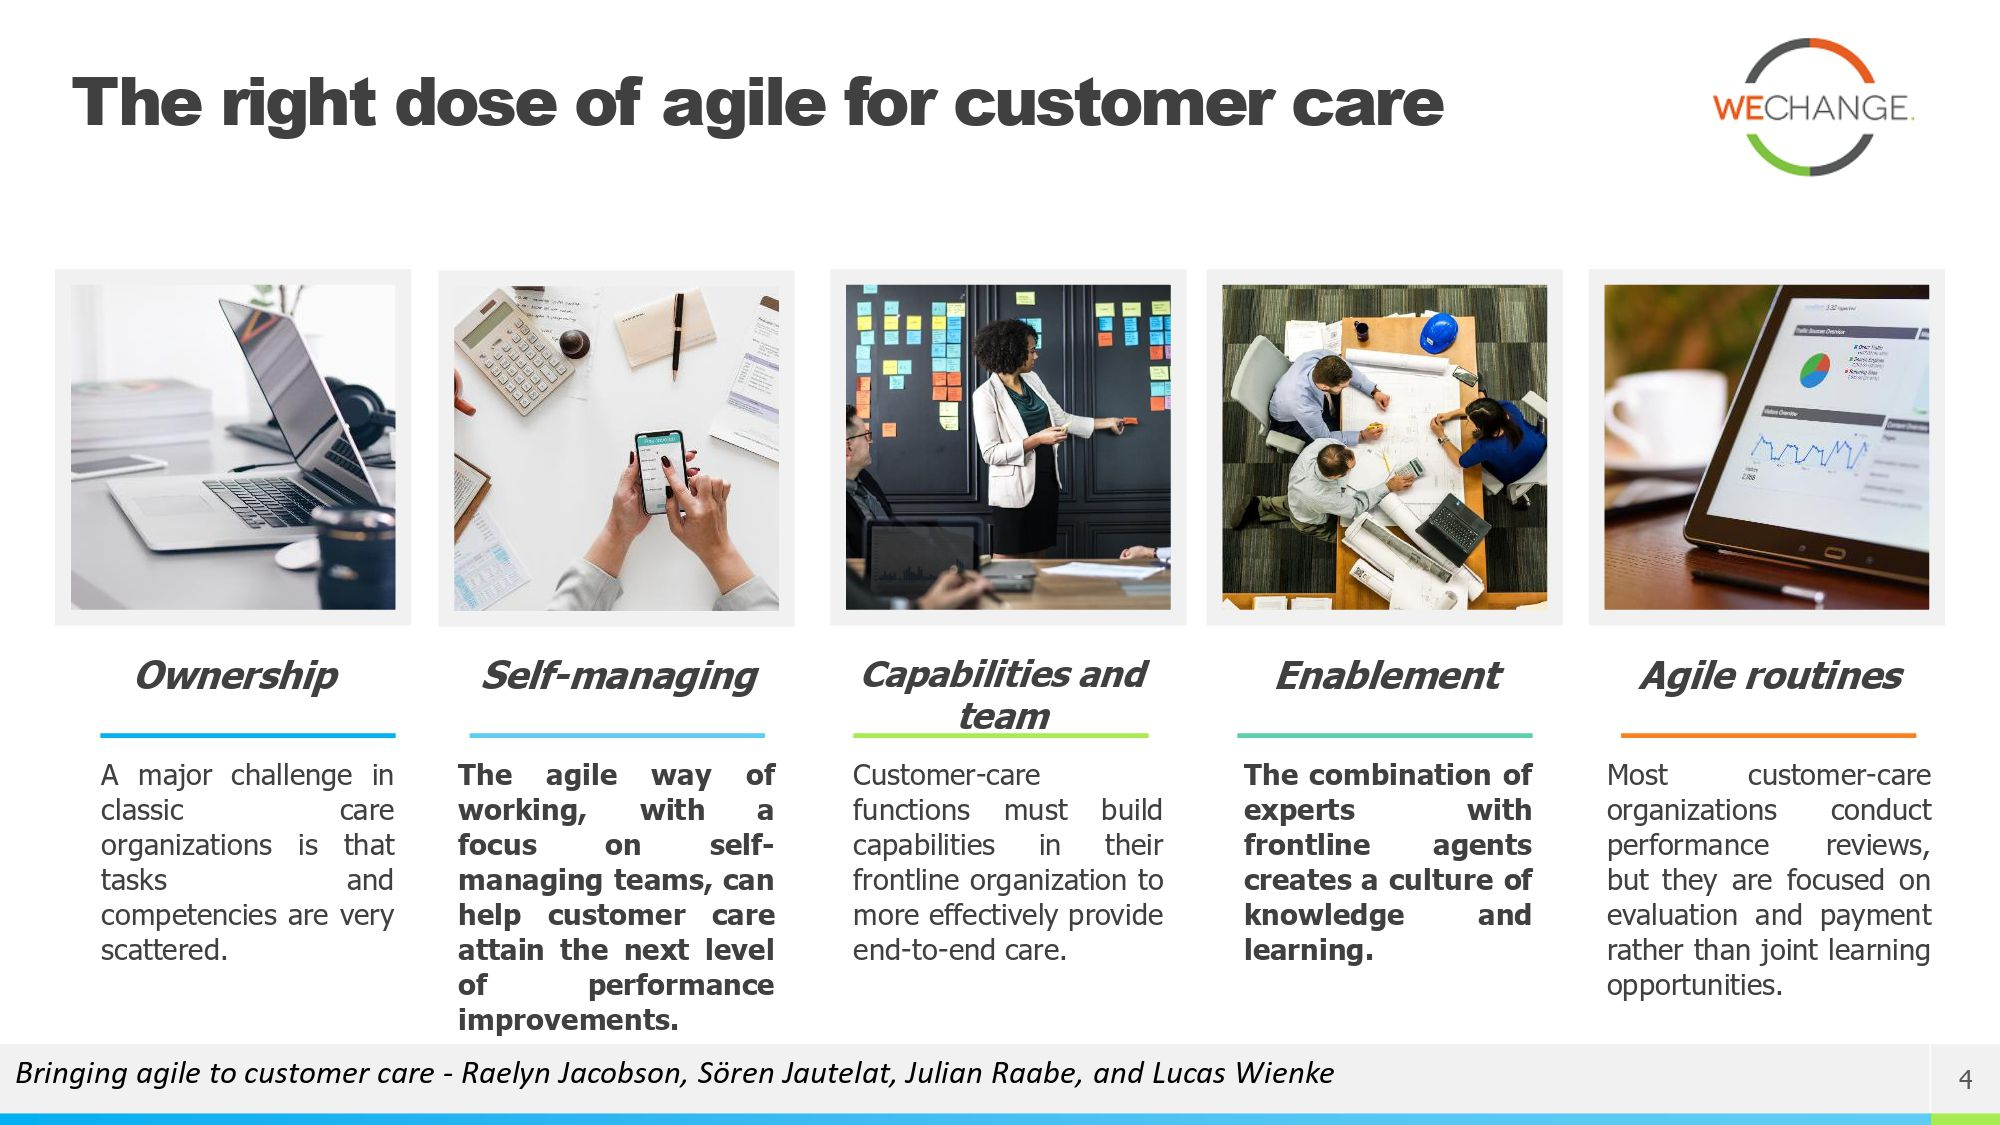 Operations agility page 0004 compressed Being & Doing Agile in Customer oriented care and Operations Organizations